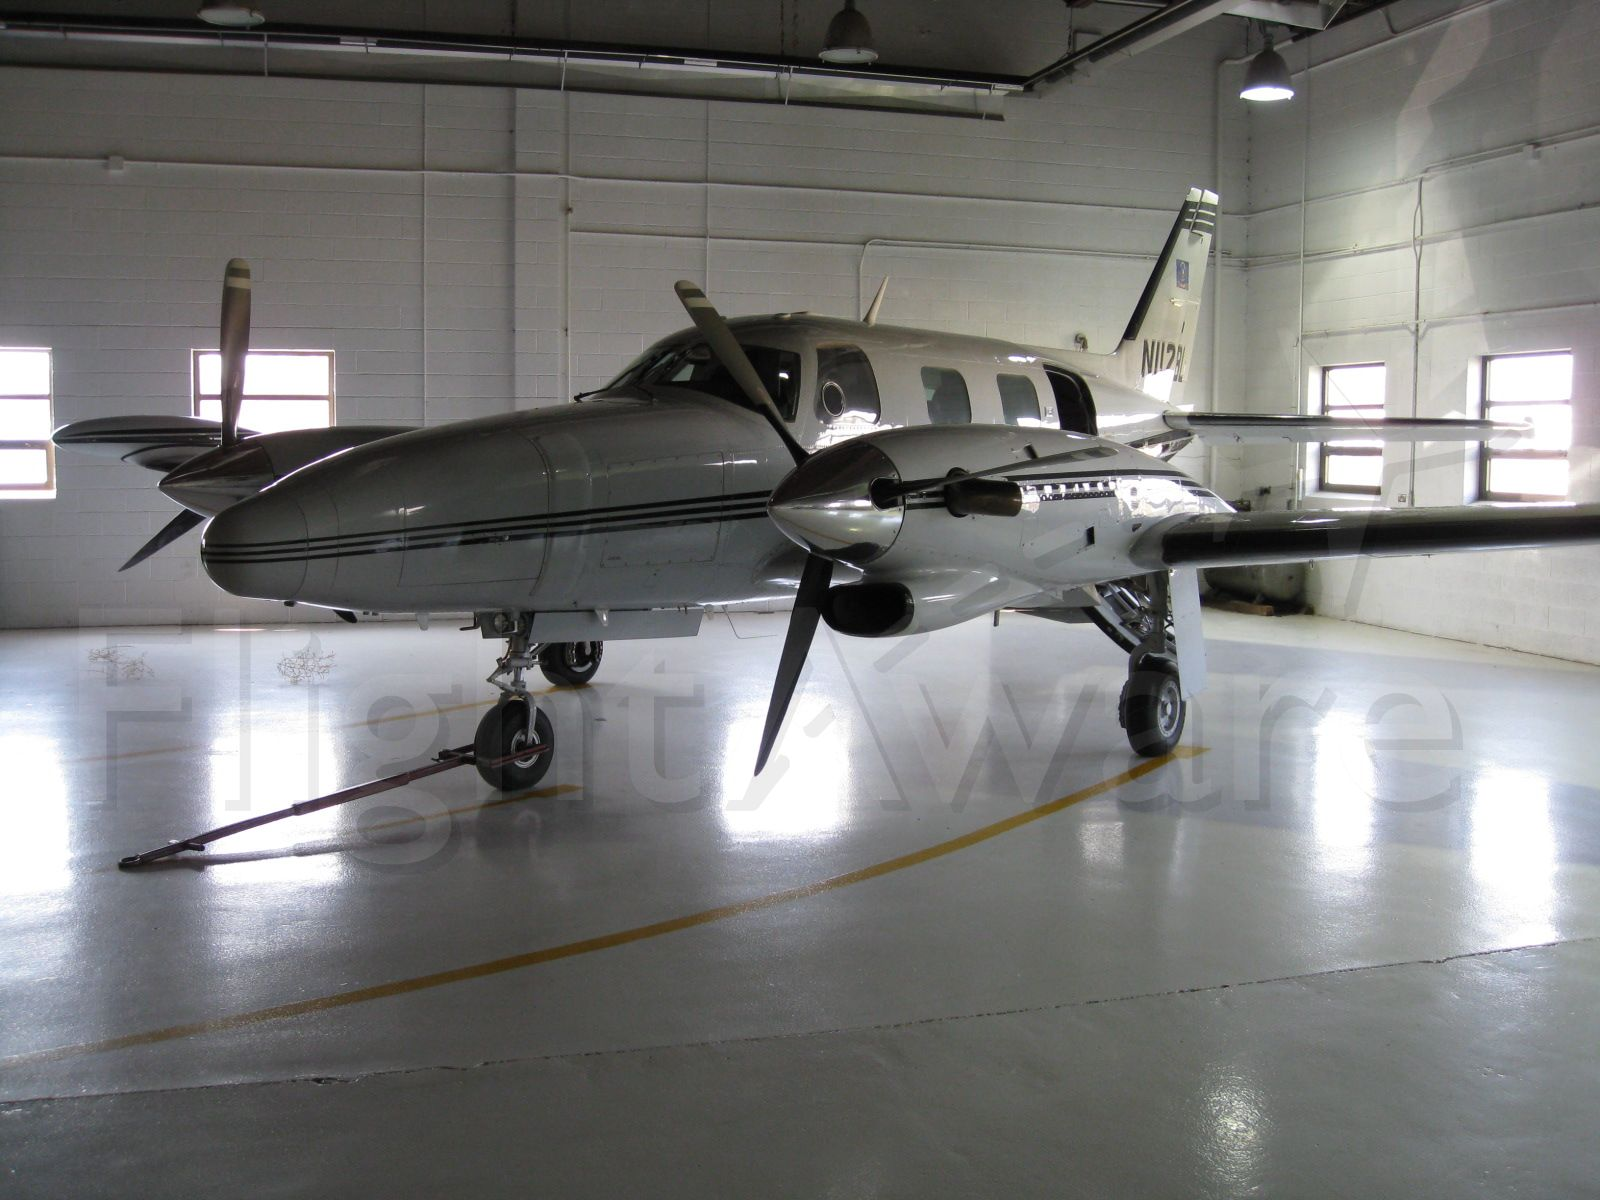 Piper Cheyenne 2 (N112BL) - This aircraft is flown by the North Dakota Department of Transportation.  It is used to transport DOT executives, DOT employees and sometimes the Governor of ND.